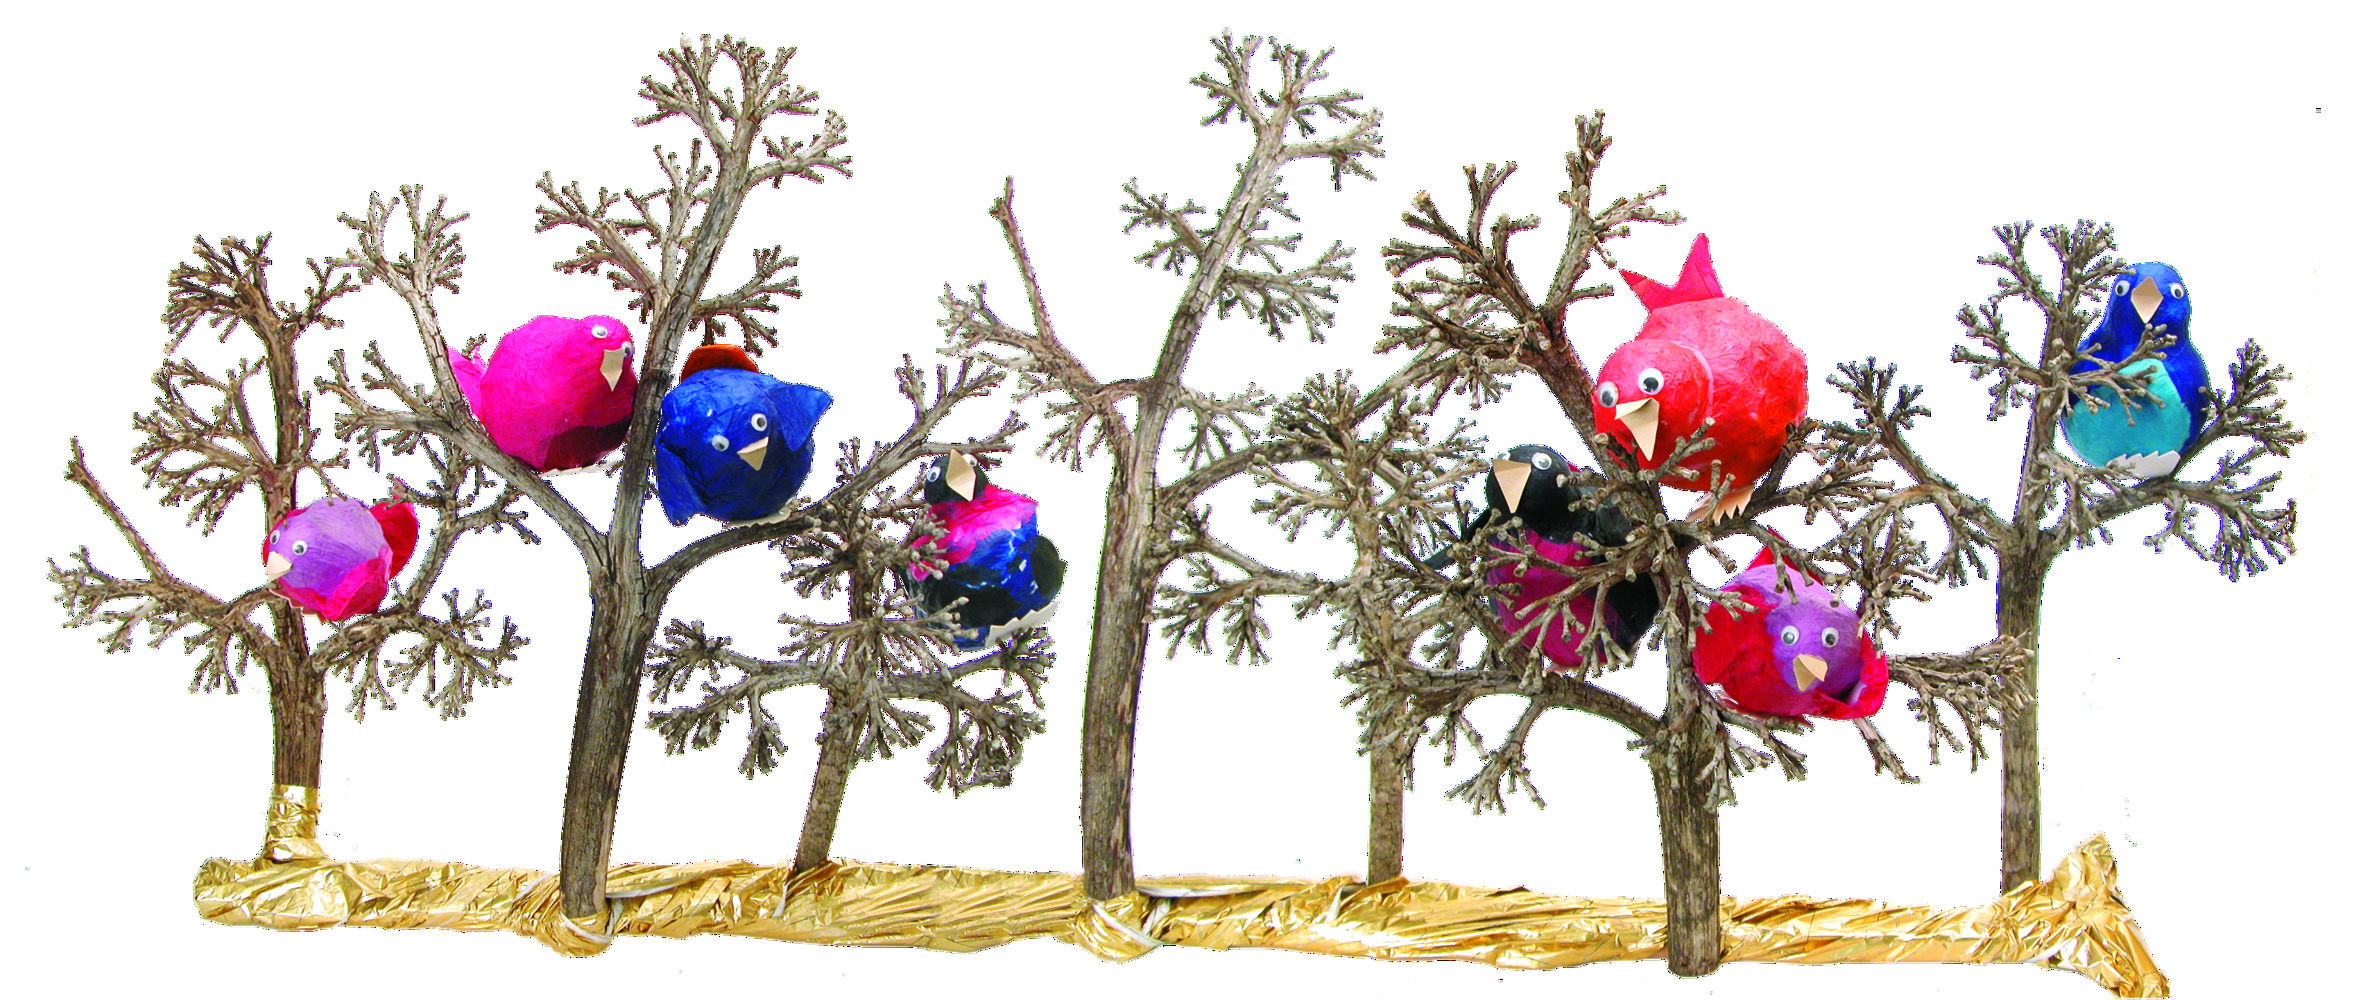 Birds In Trees 4